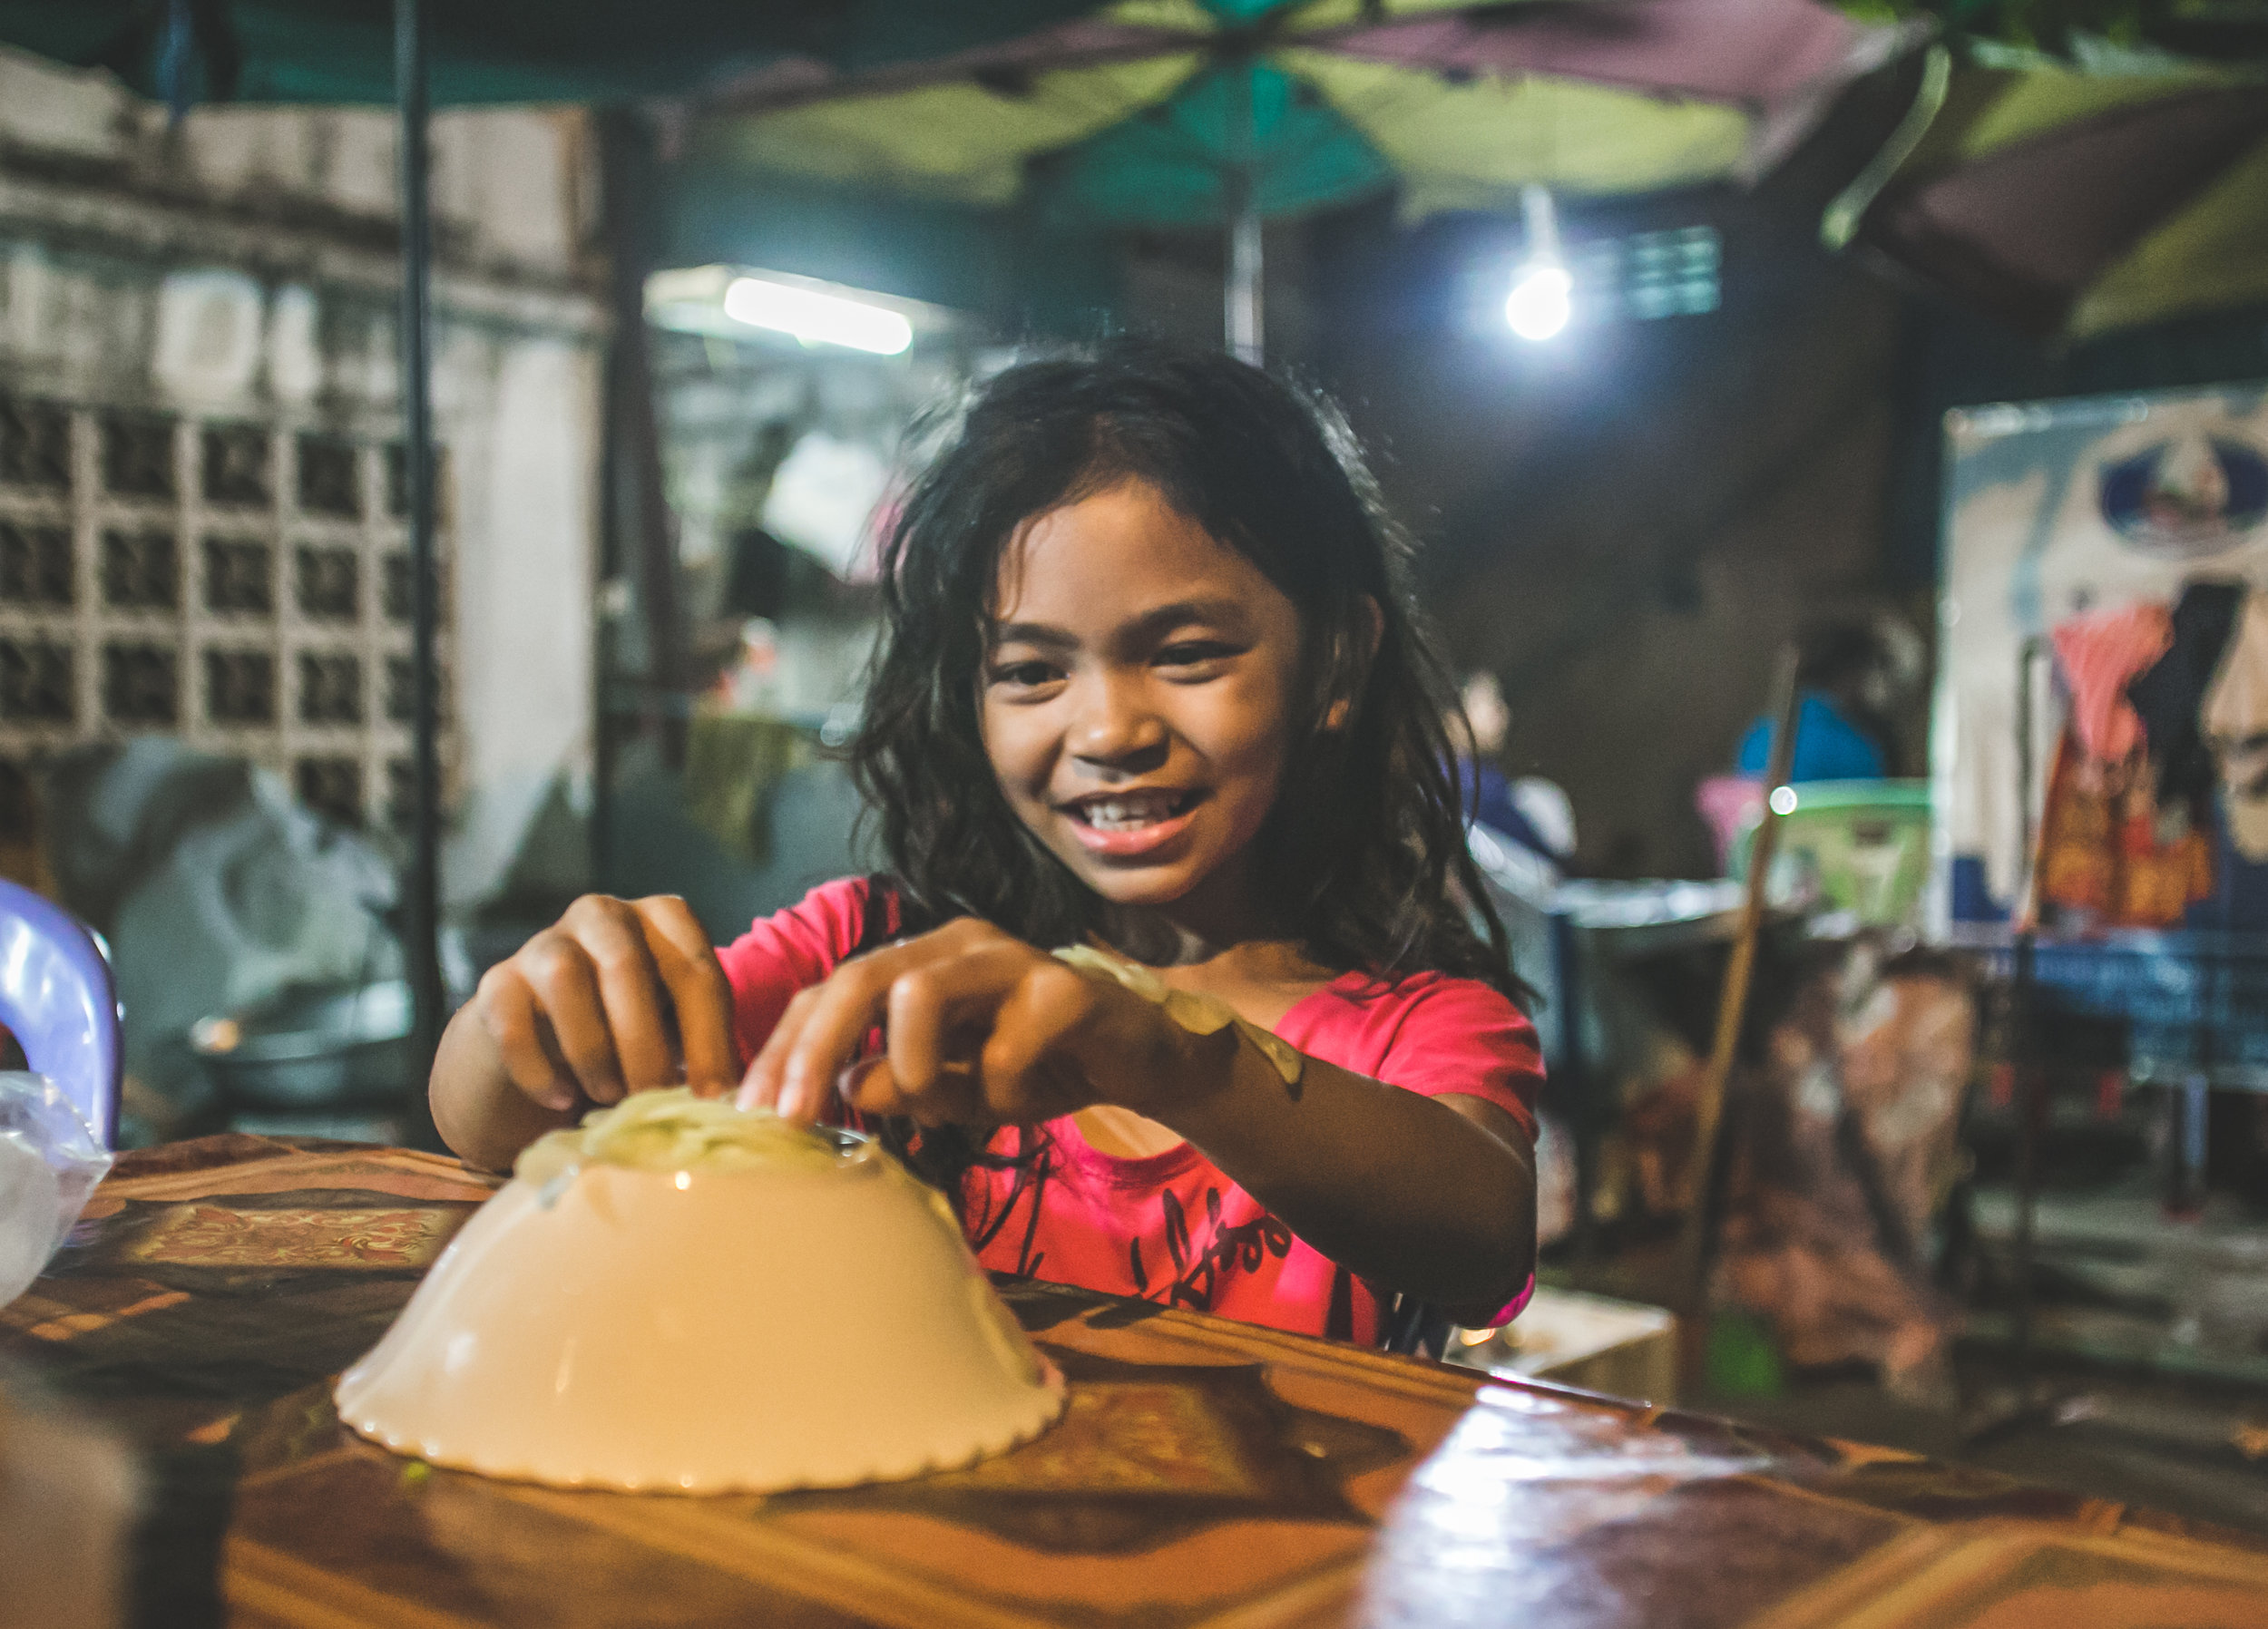 12:25am - Phnom Penh - The daughter of a local street vendor plays with onions her mother instructed her to cut up.